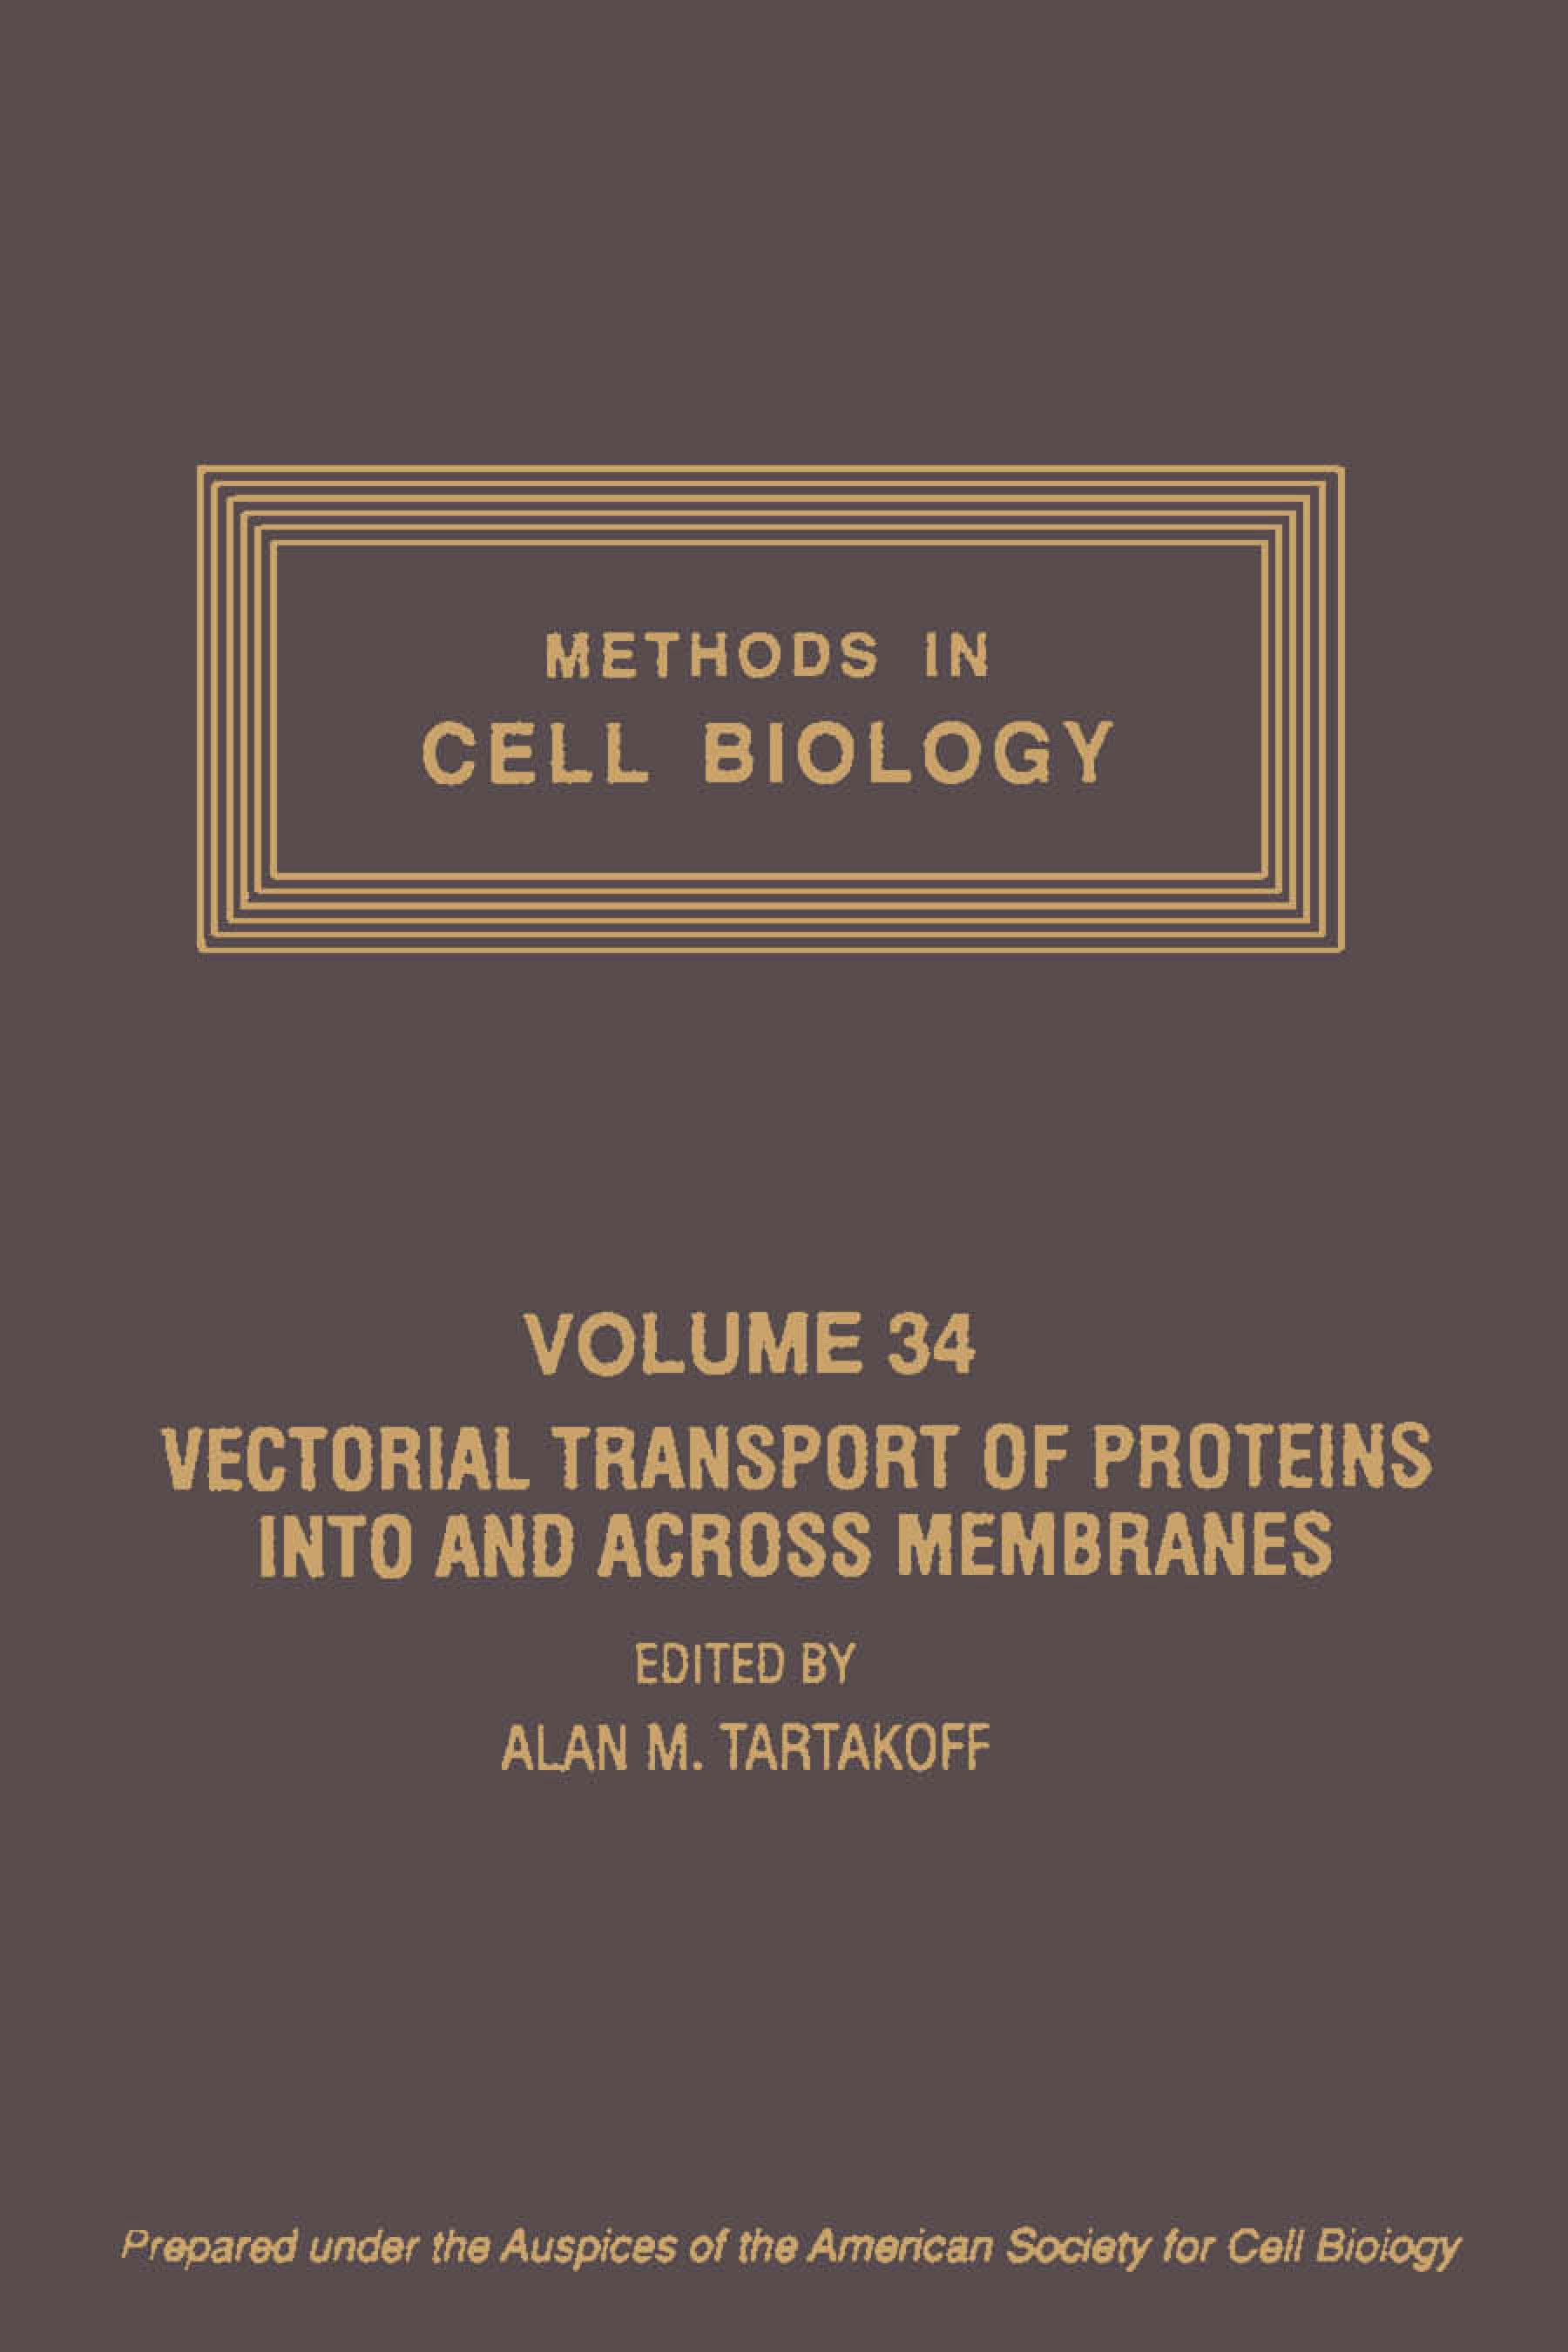 Vectorial Transport of Proteins into and across Membranes